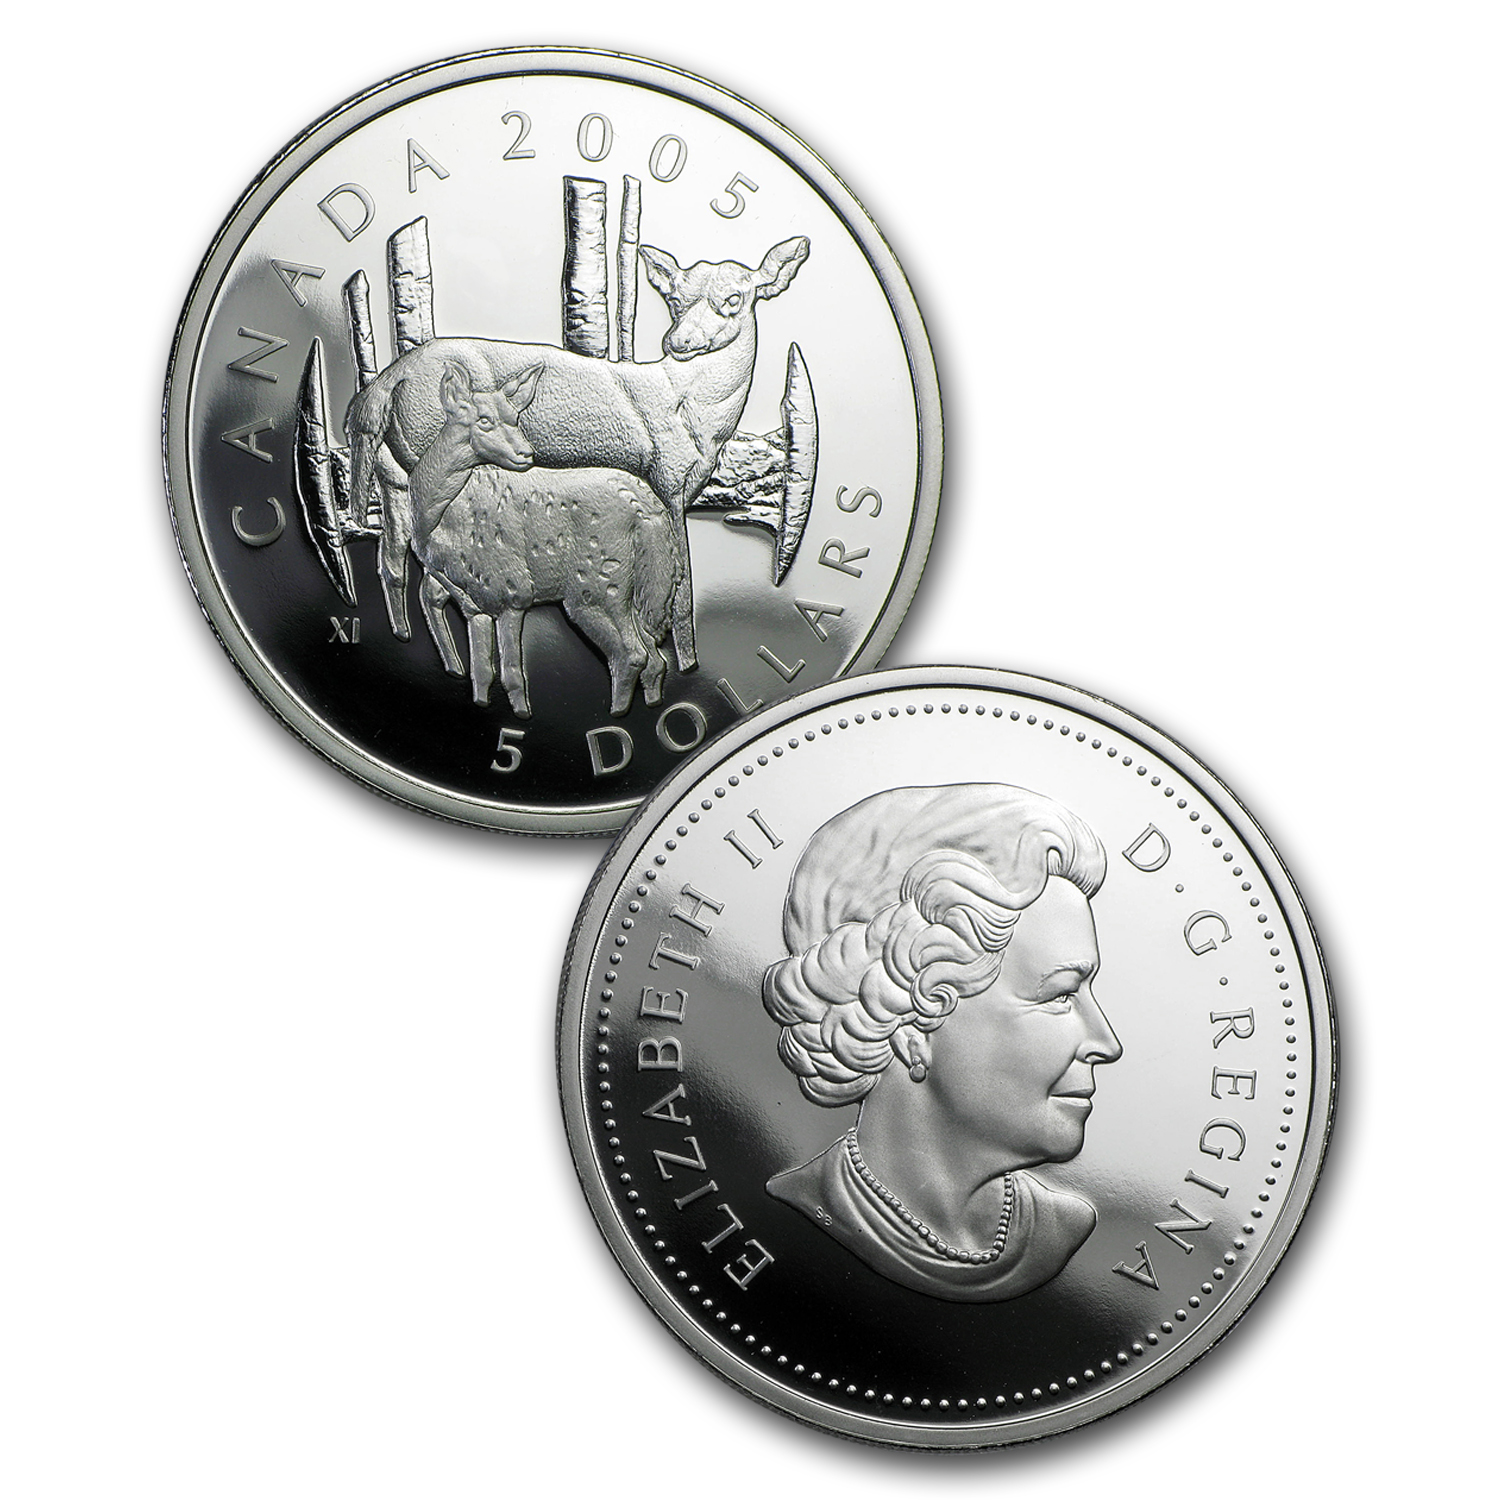 2005 1 oz Silver Canadian White Tailed Deer Coin and Stamp Set